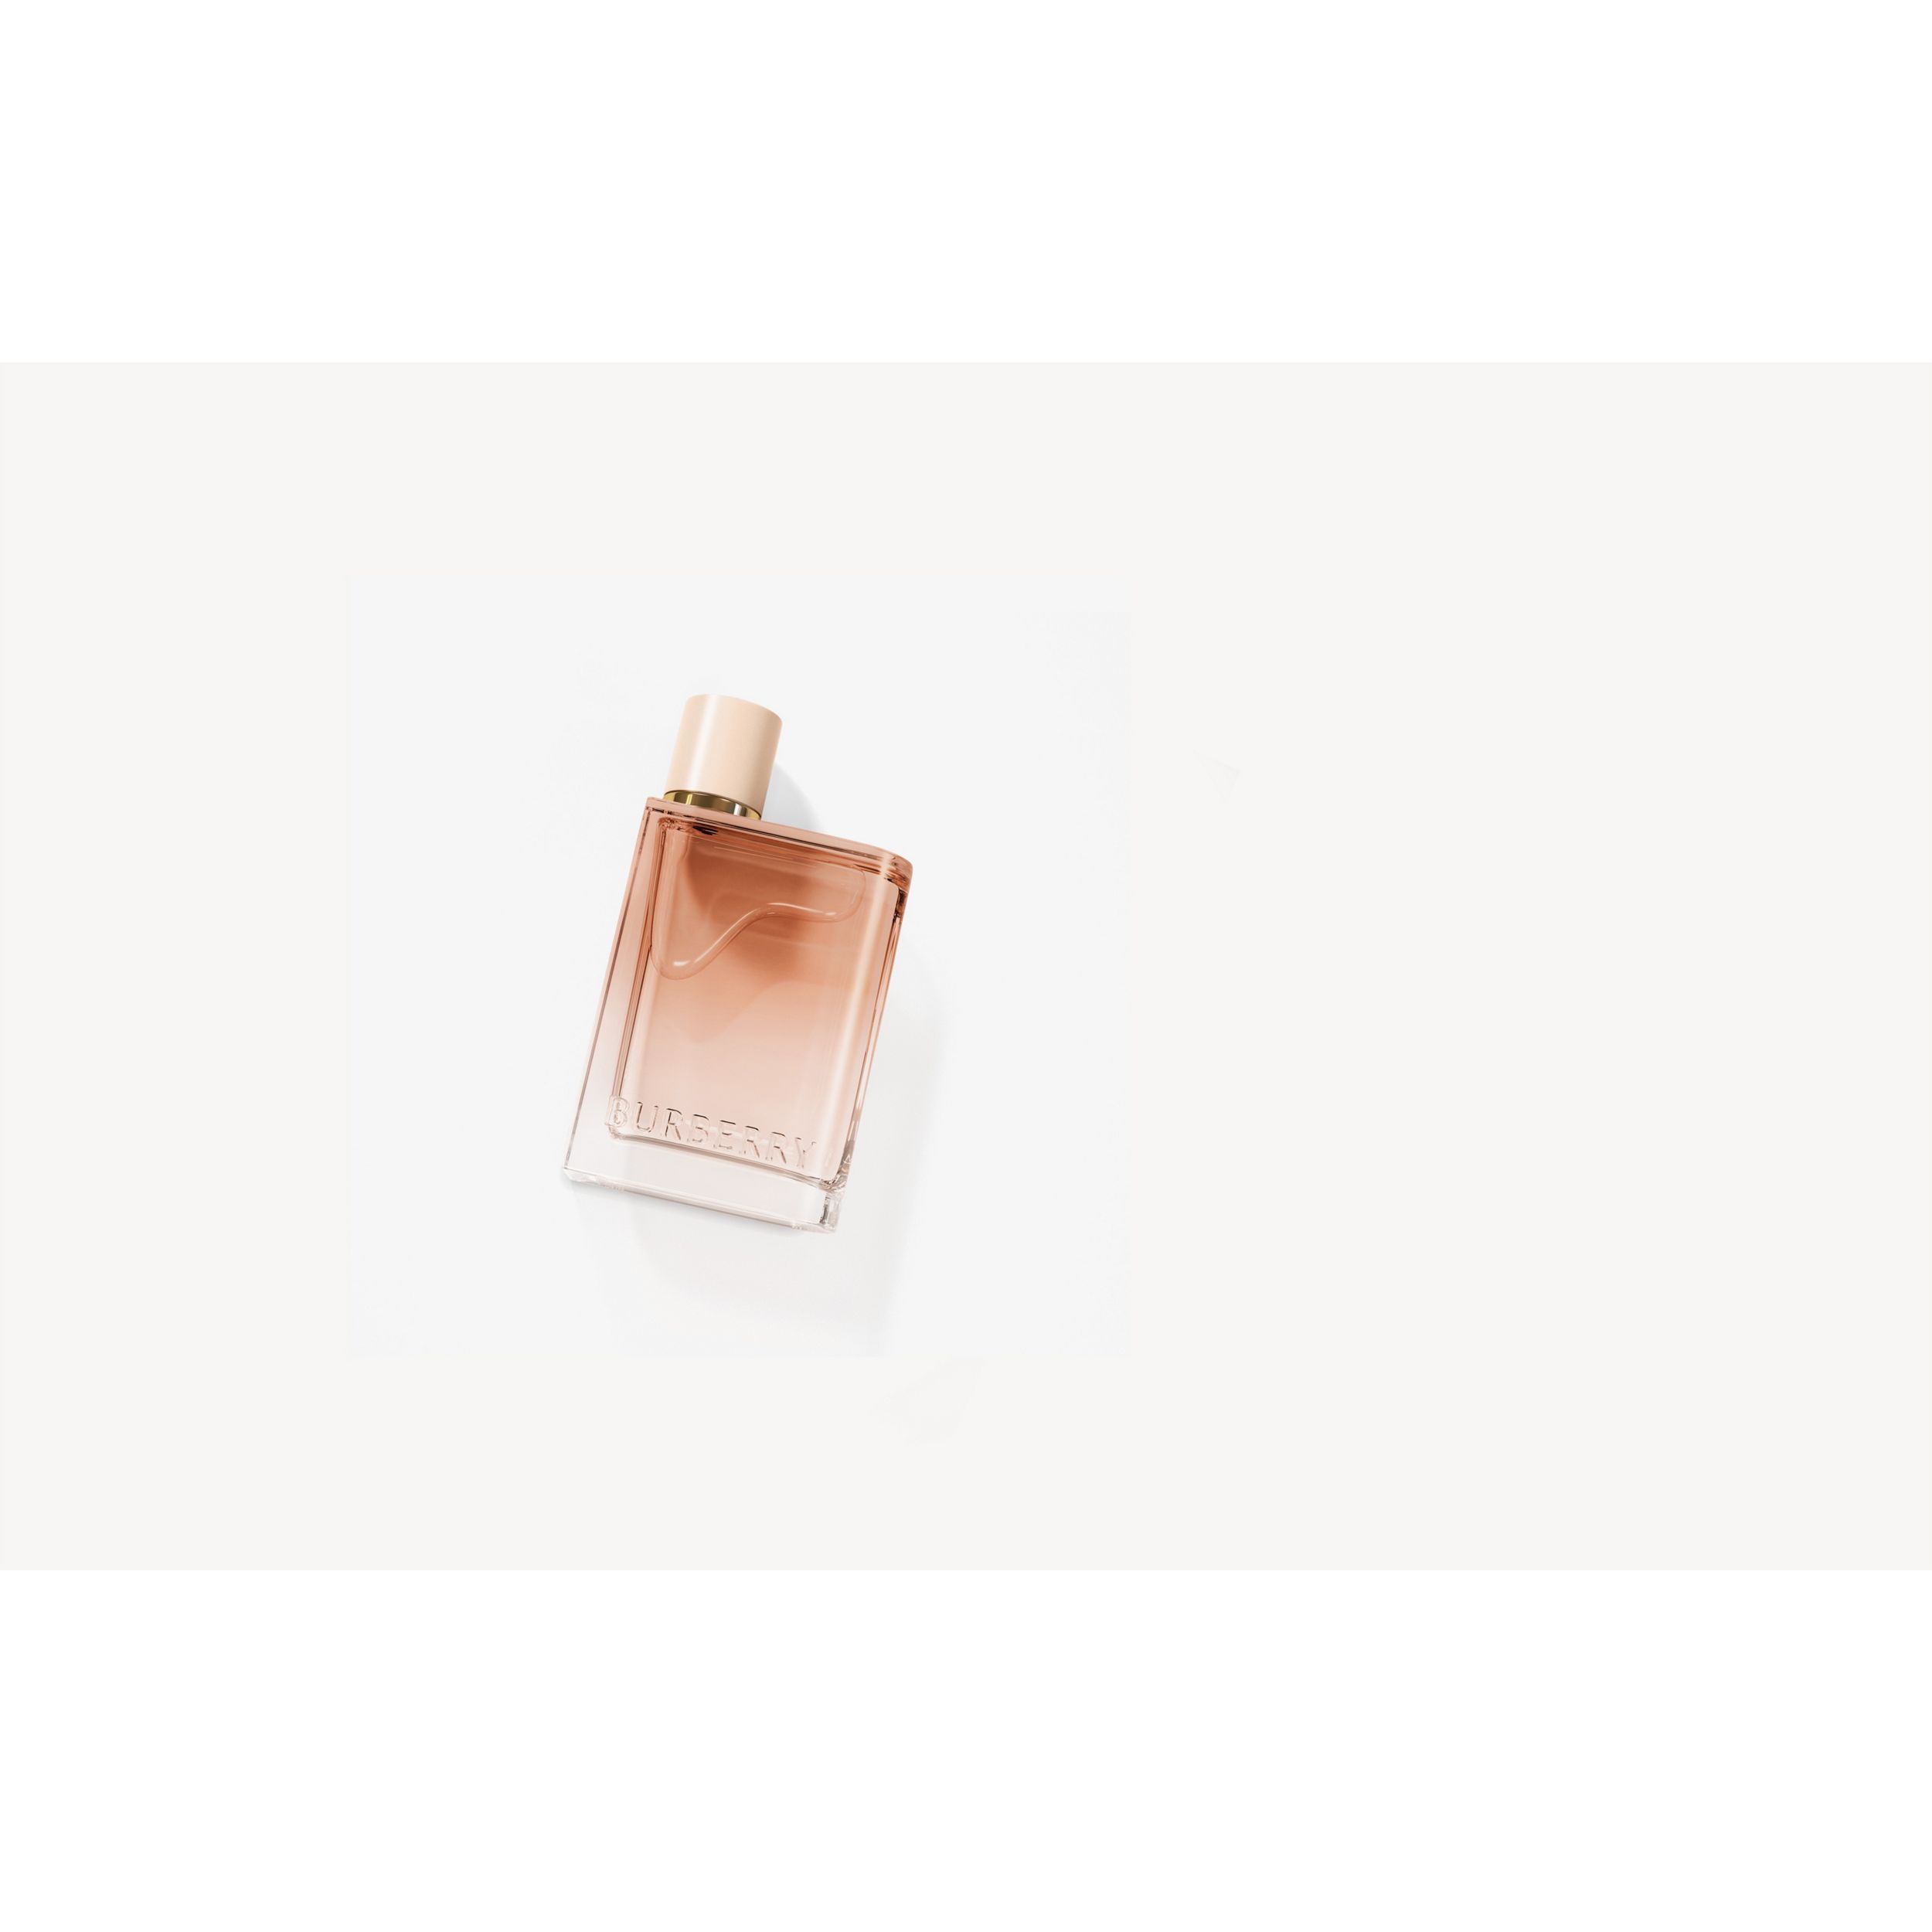 Her Intense Eau de Parfum 100ml - Women | Burberry Hong Kong S.A.R. - 2